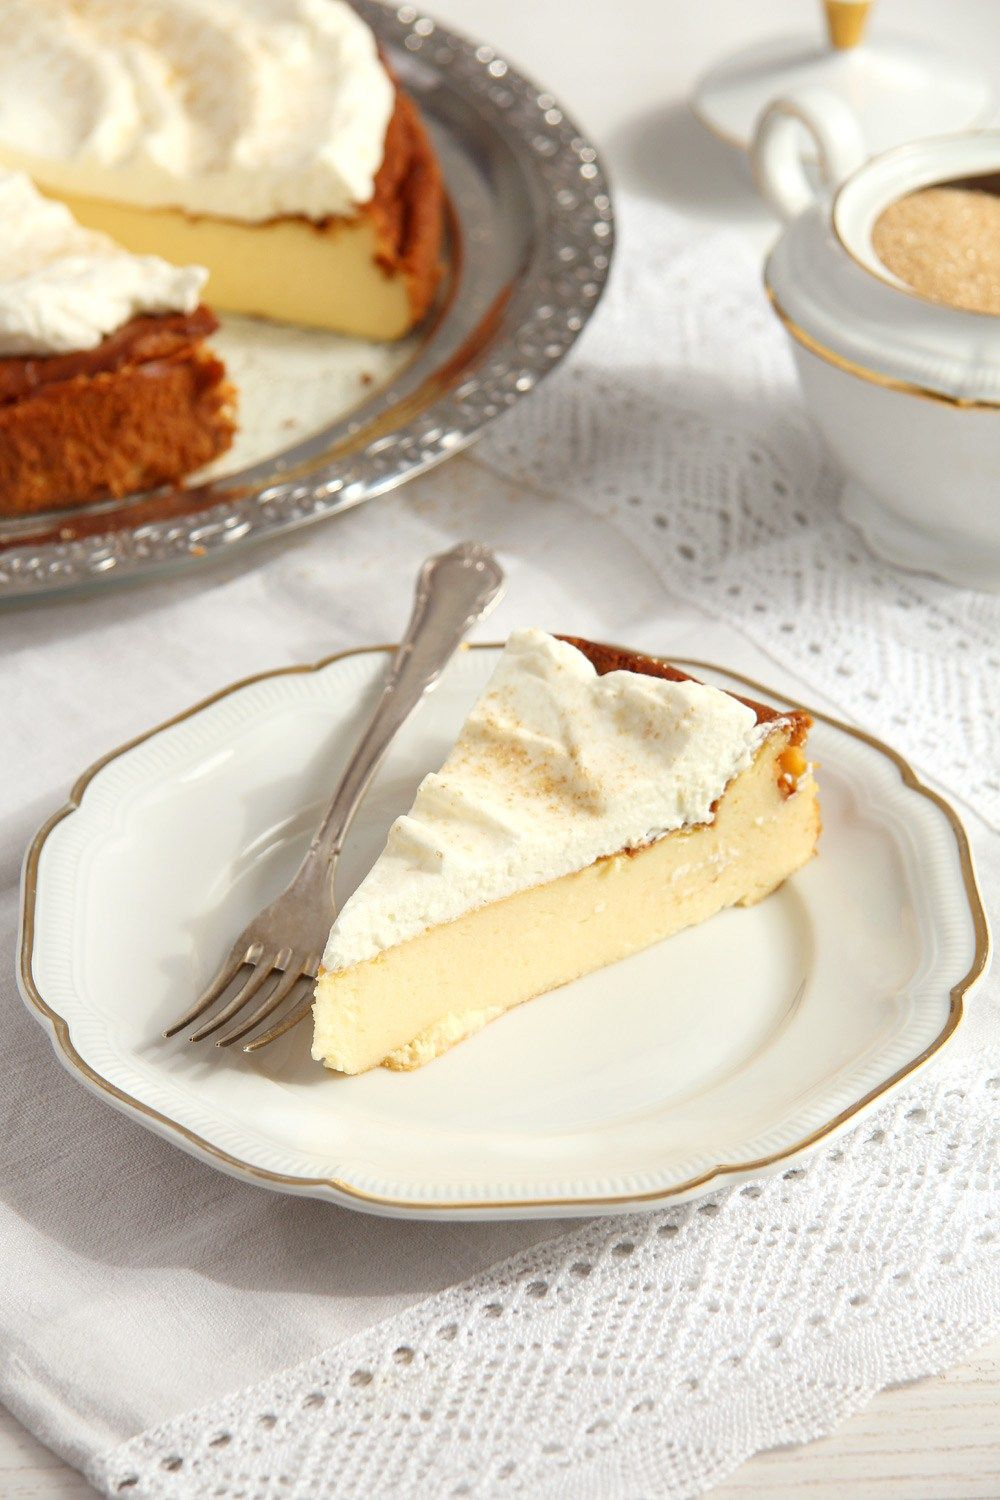 crustless cheesecake cream The Quickest and Most Delicious Crustless Cheesecake